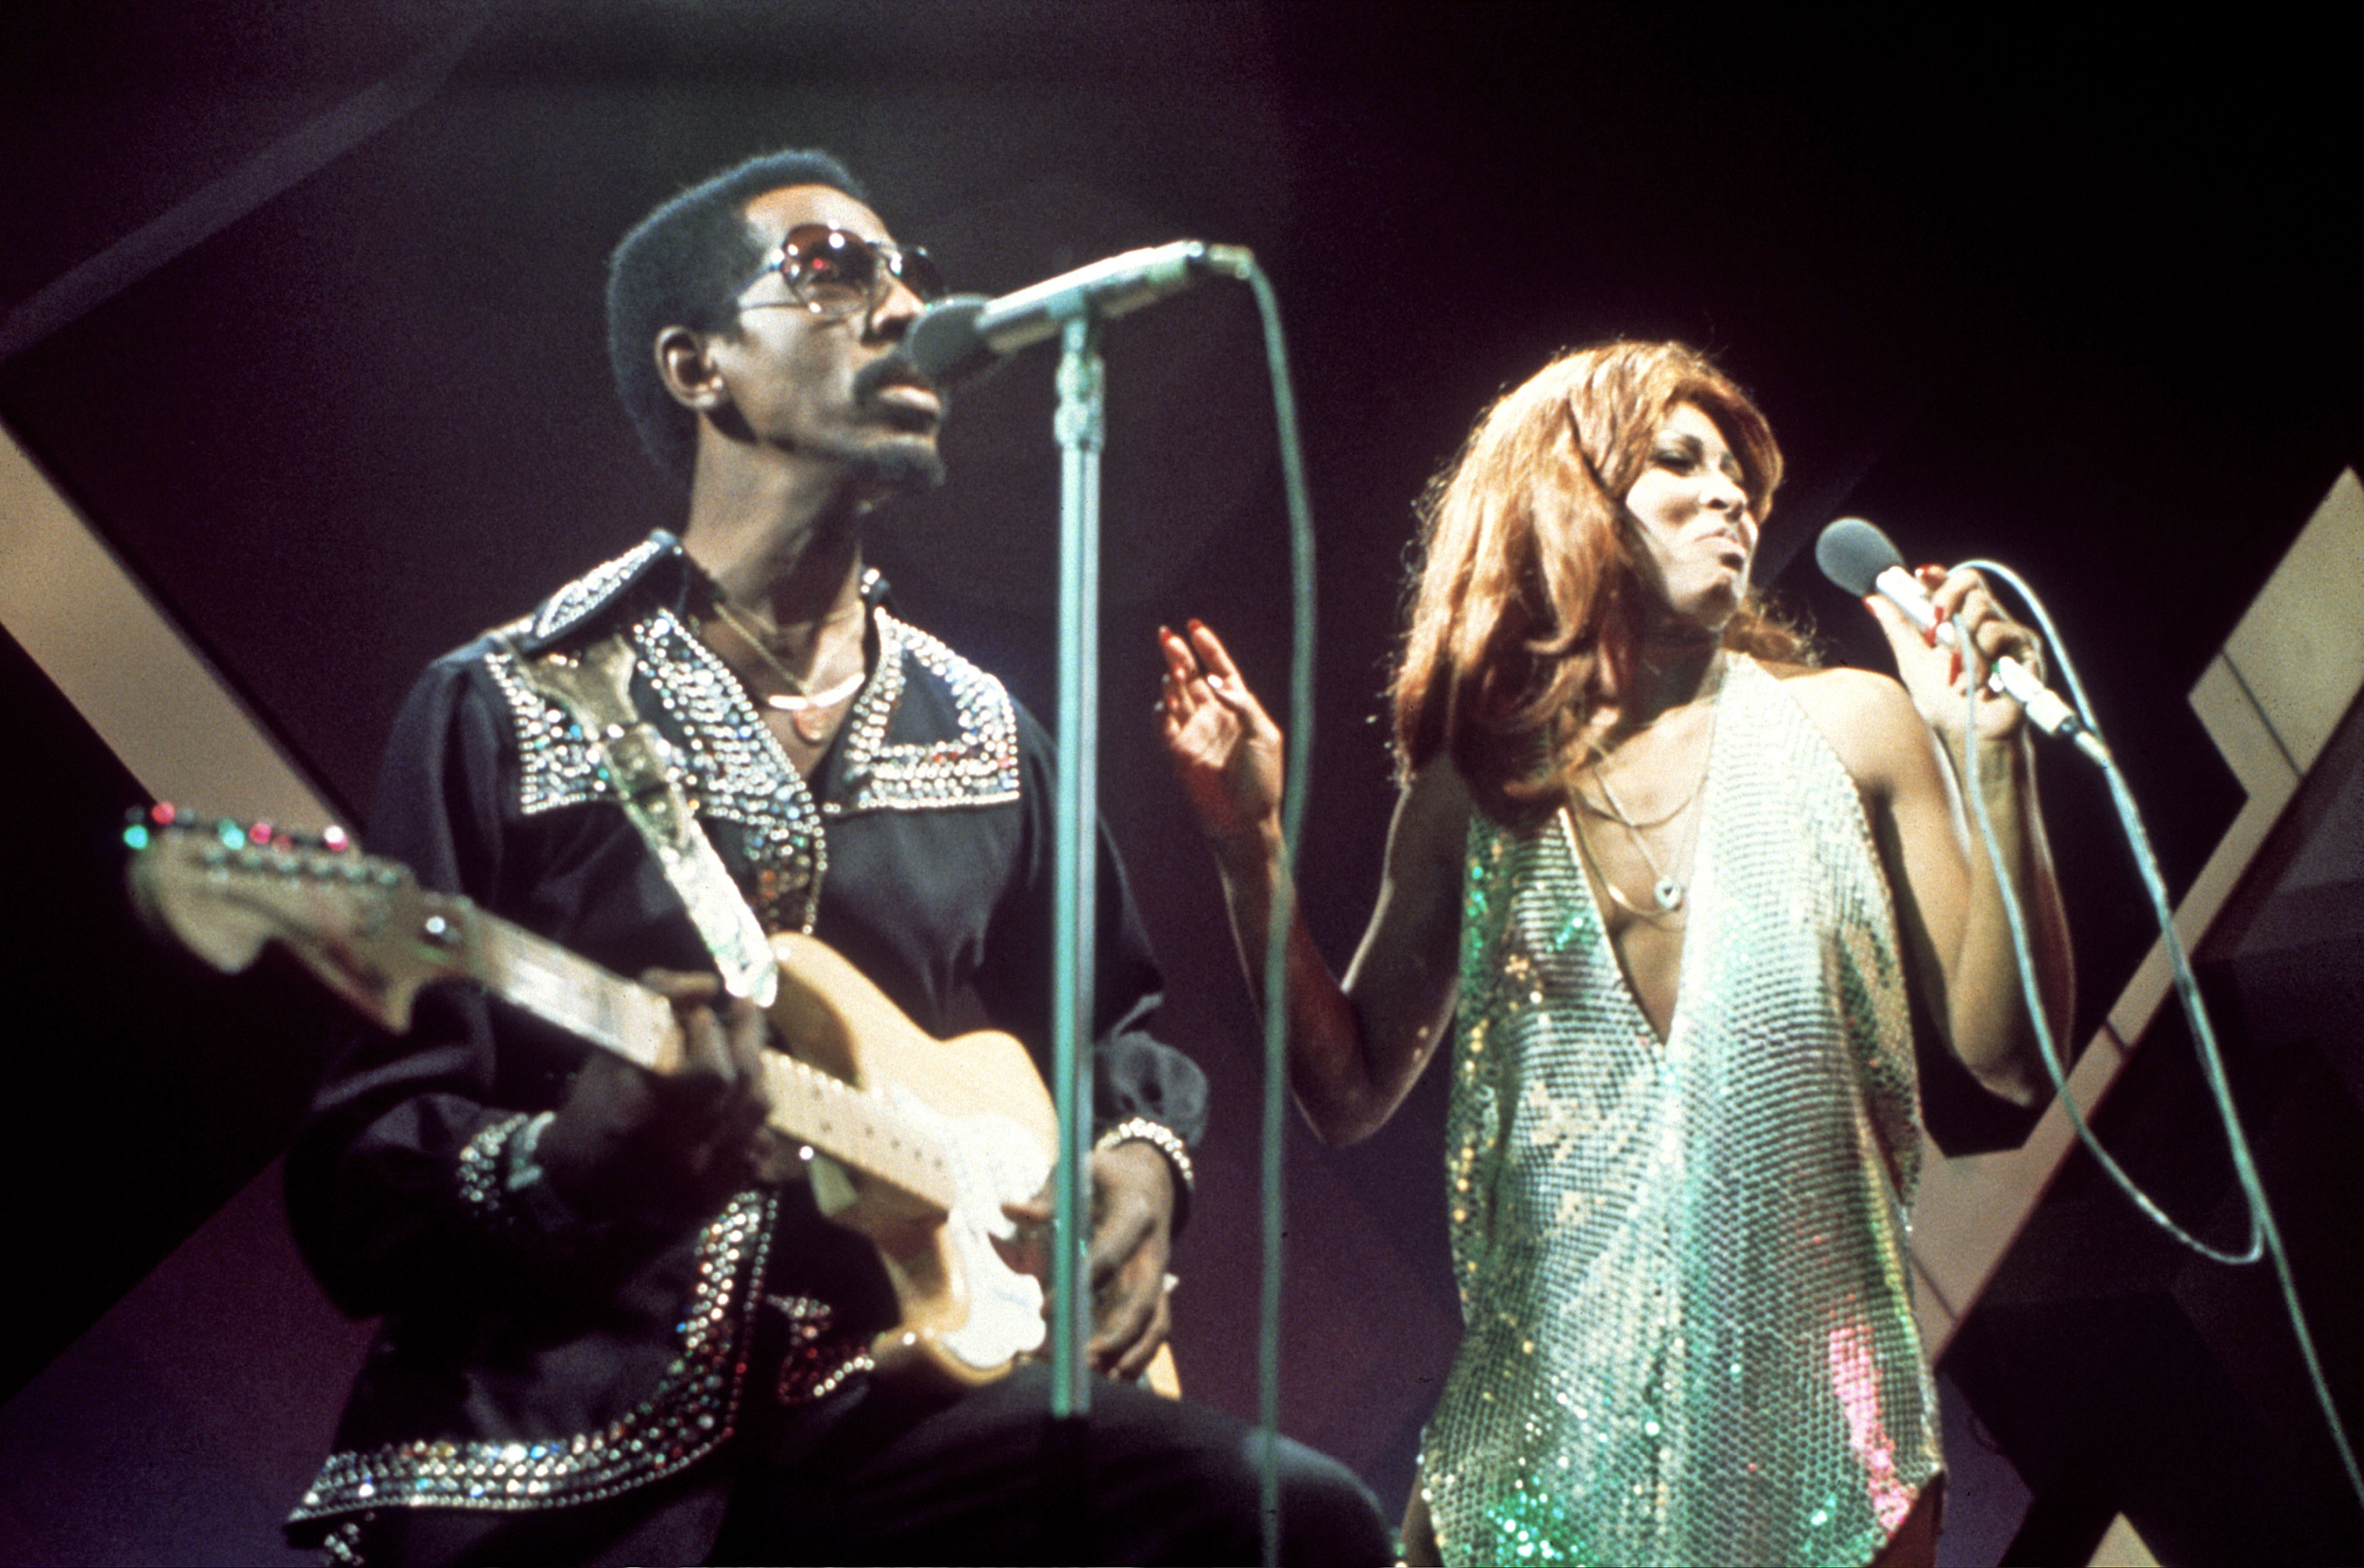 Ike and Tina Turner in 1969. Photo: Pictorial Press Ltd / Alamy Stock Photo